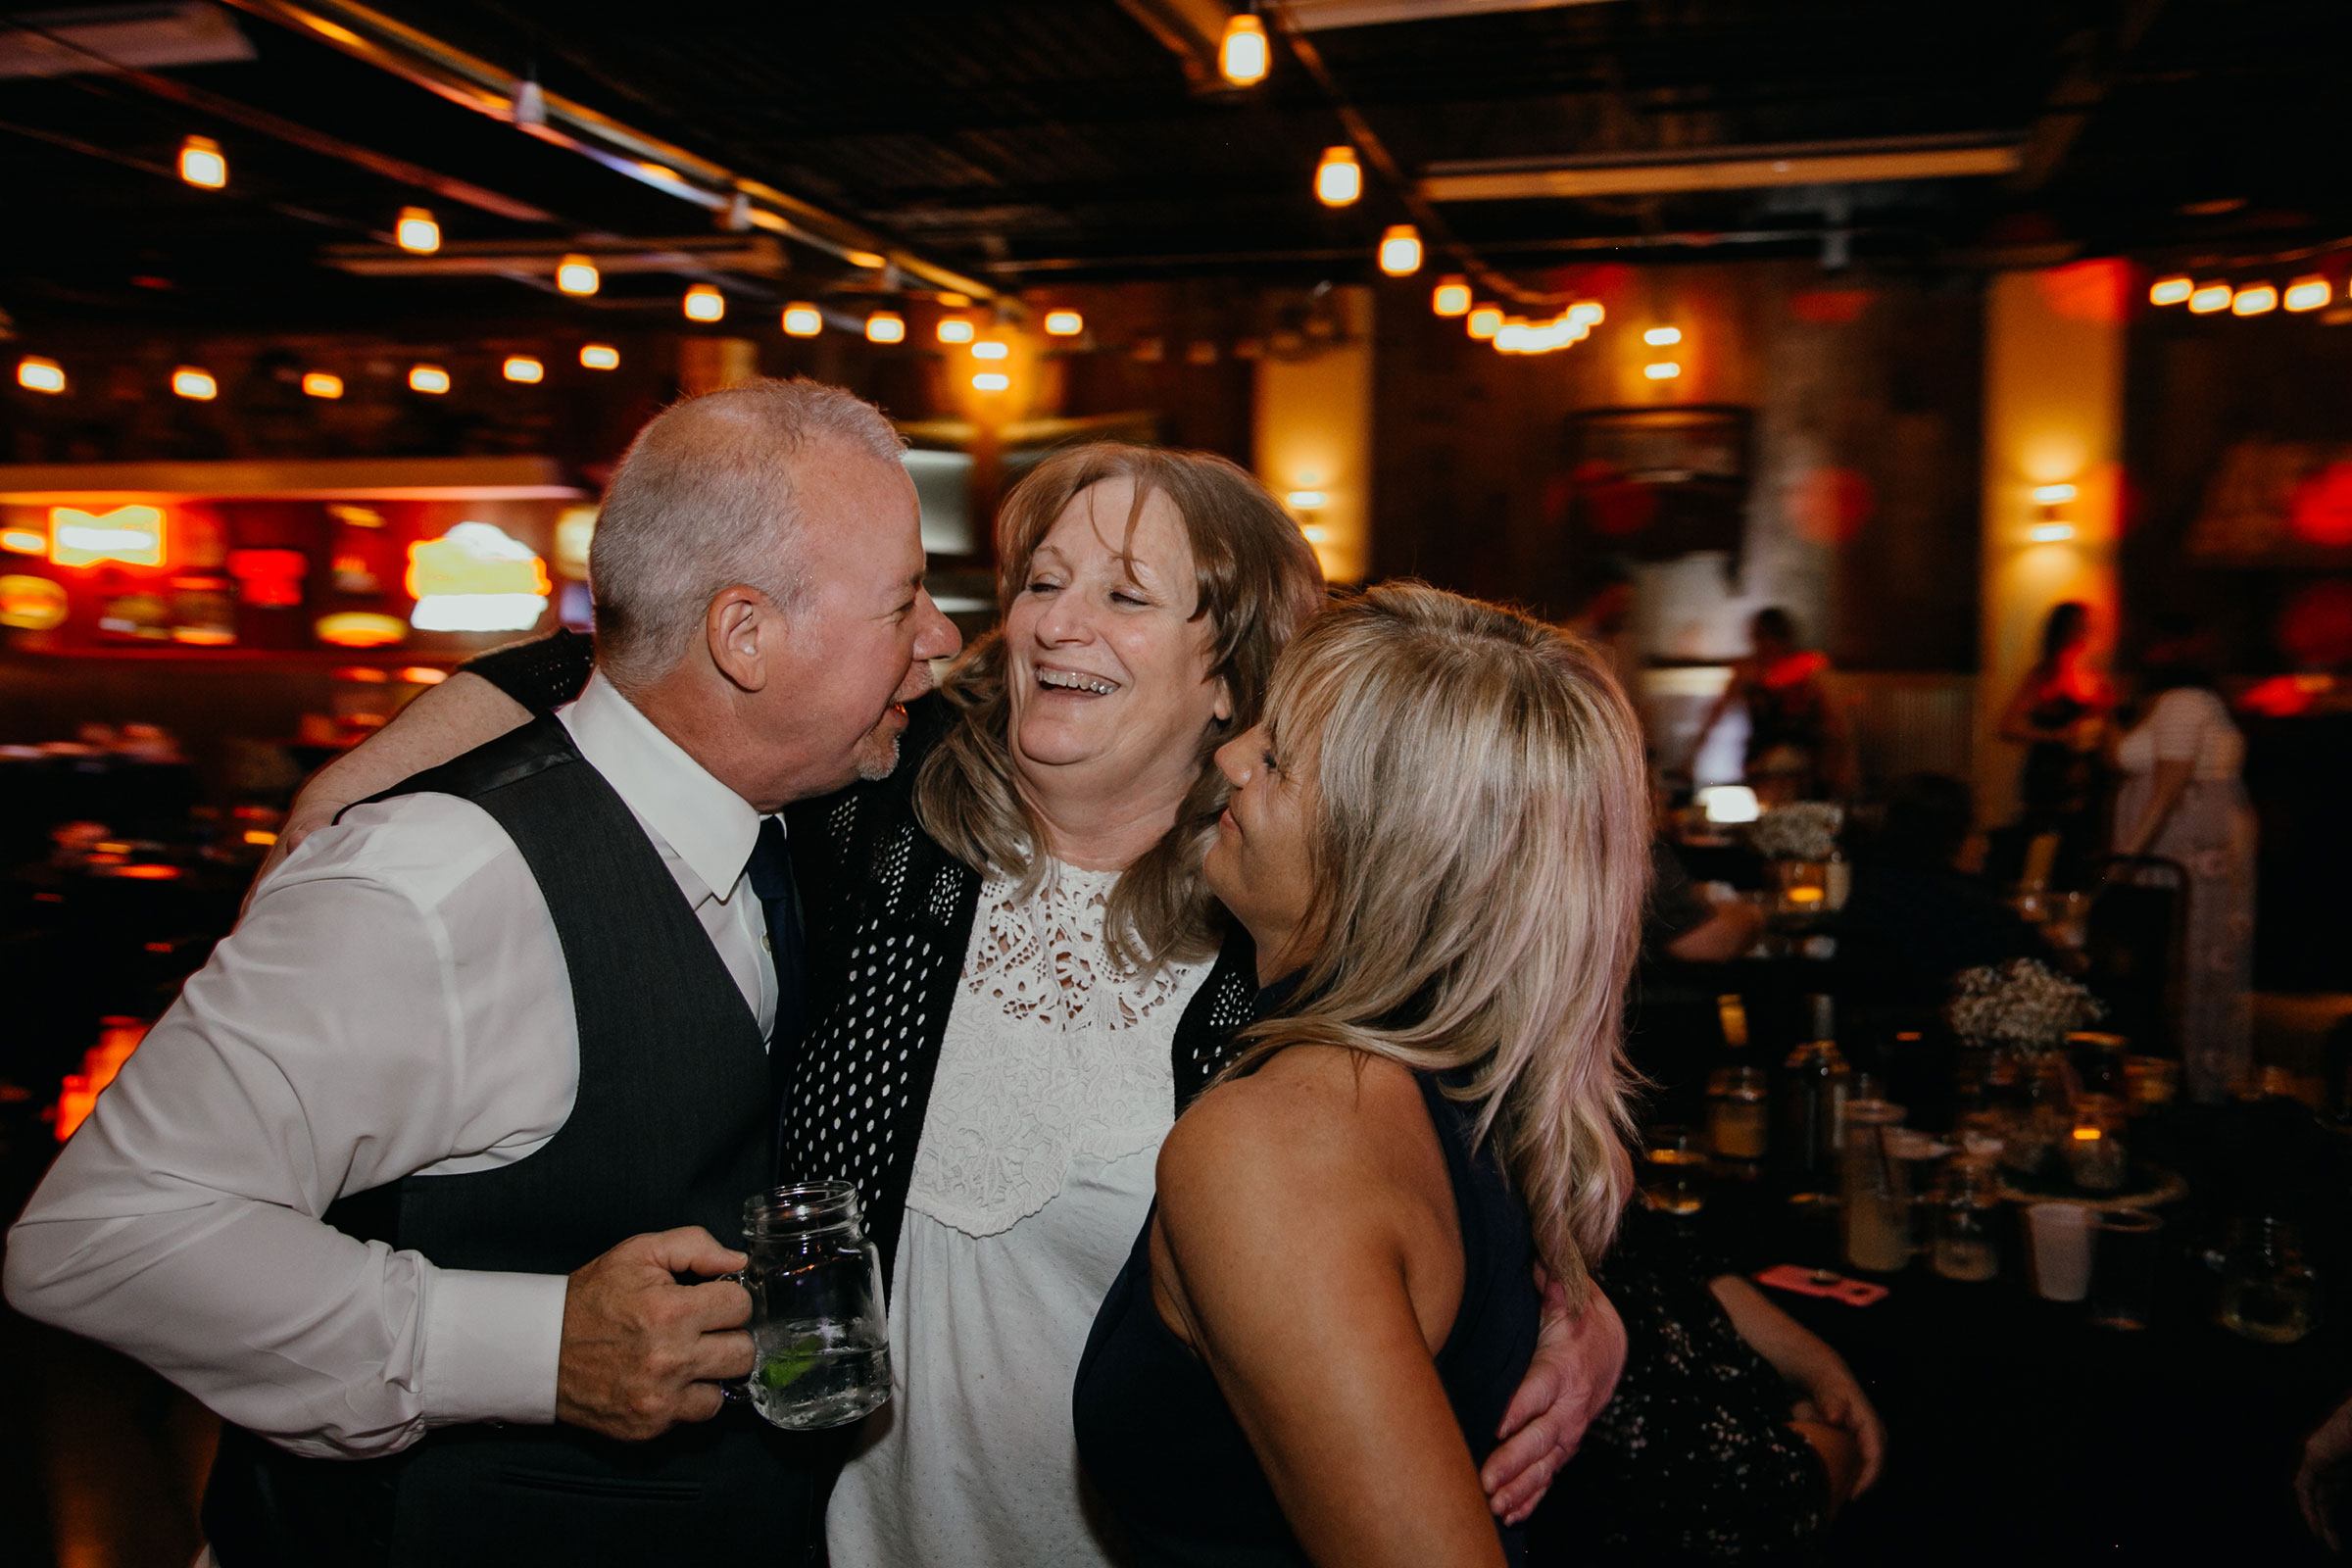 parents-talking-with-guest-laughing-decades-event-center-building-desmoines-iowa-raelyn-ramey-photography..jpg